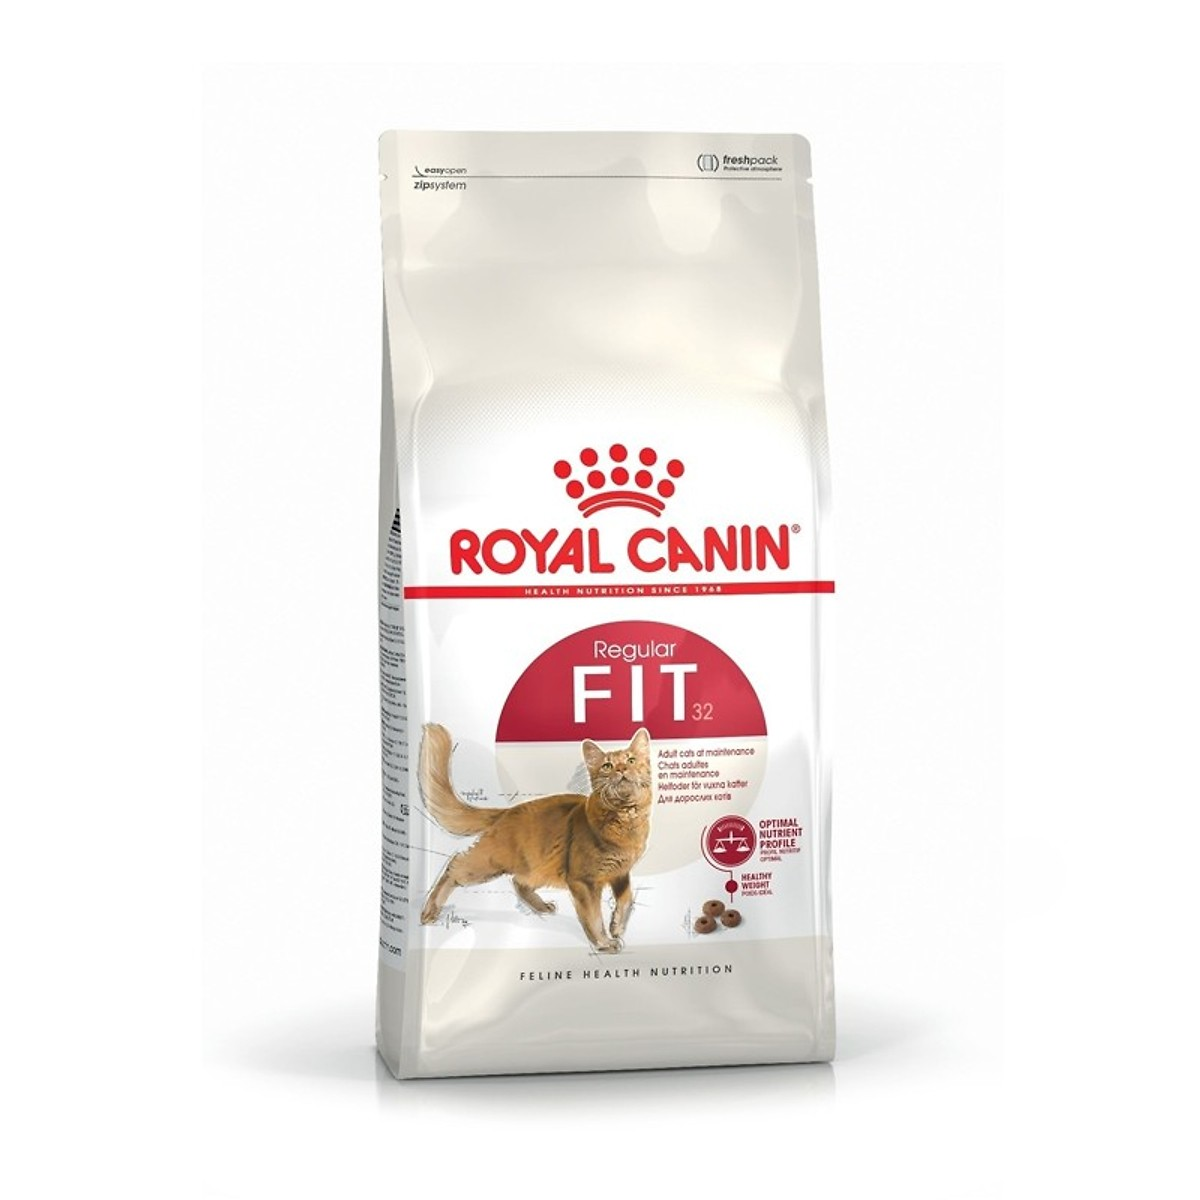 ROYAL CANIN FIT32 400g